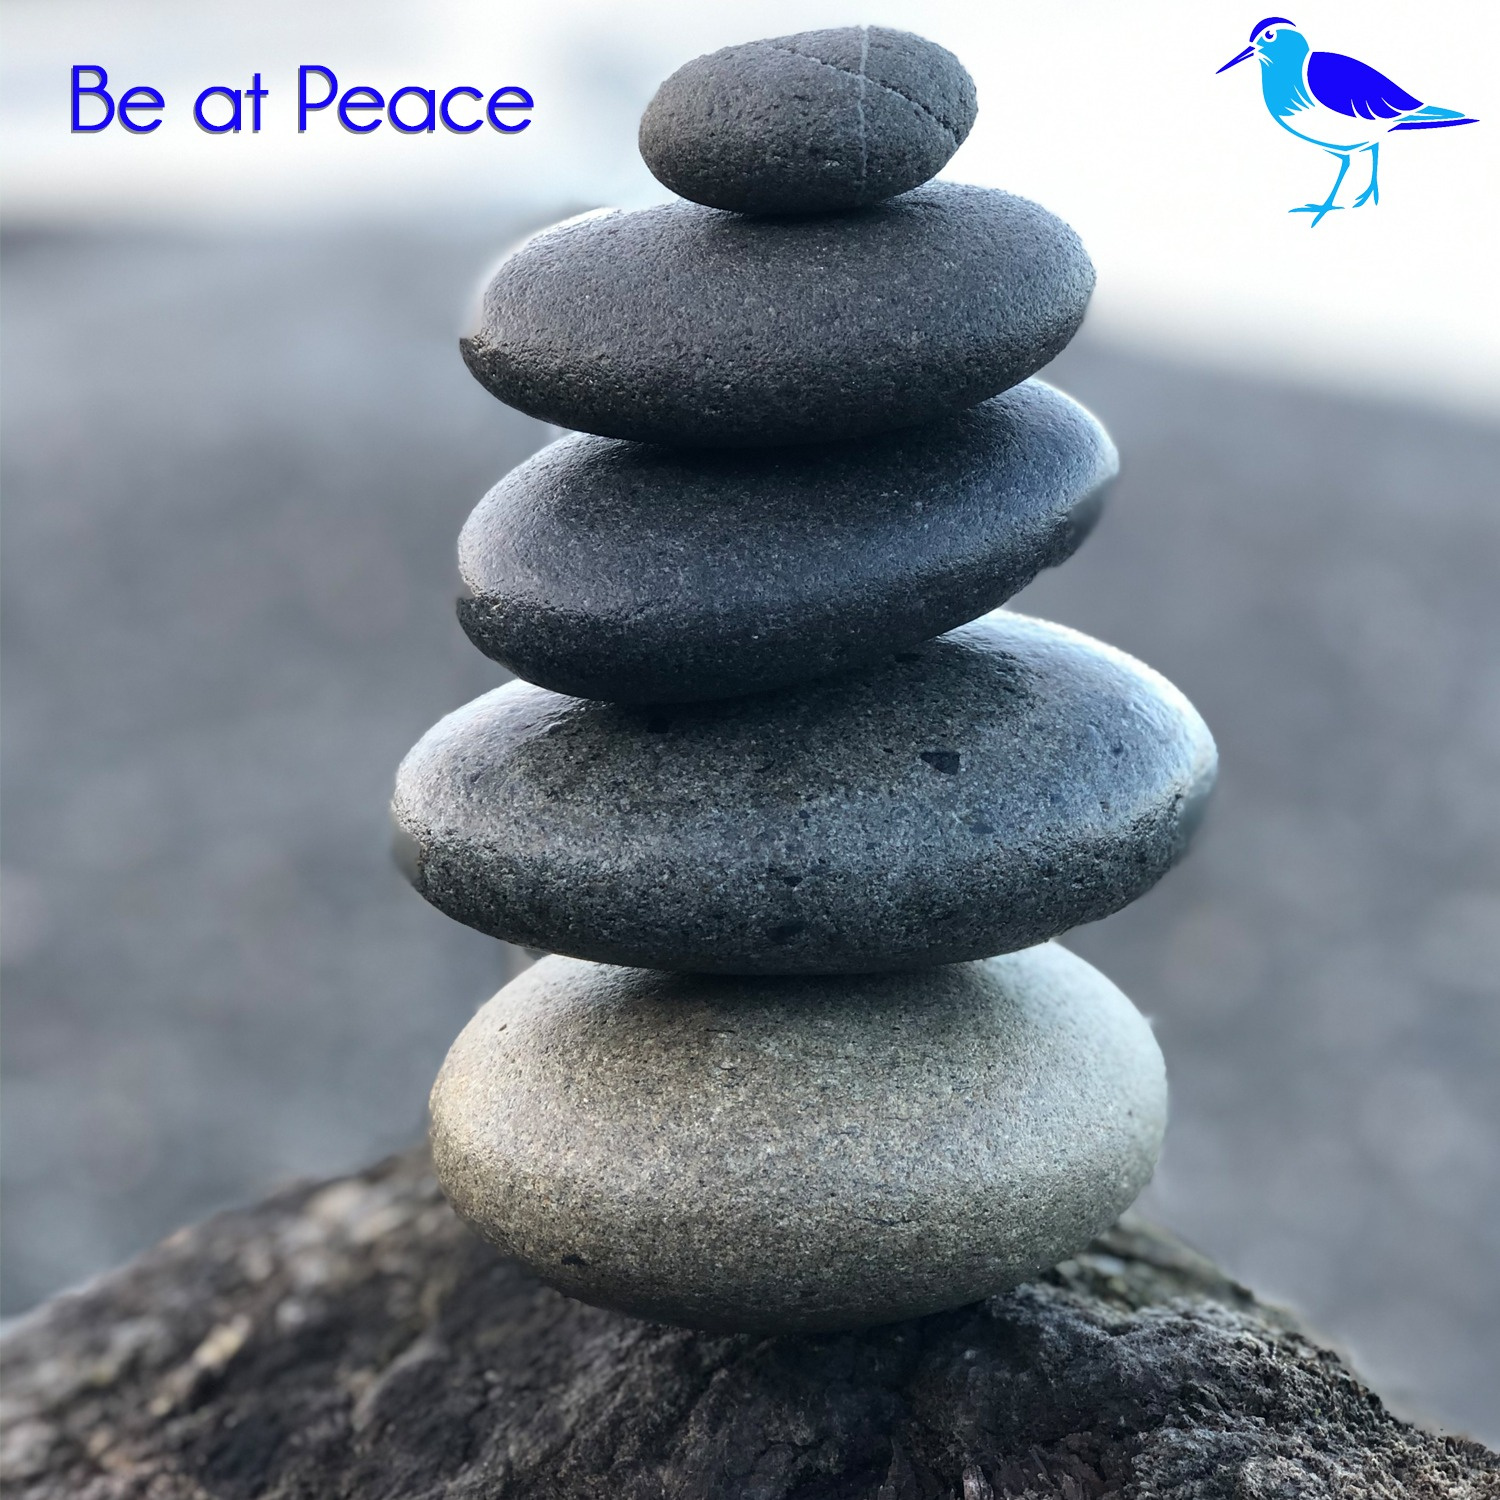 Be at Peace: A Special Episode